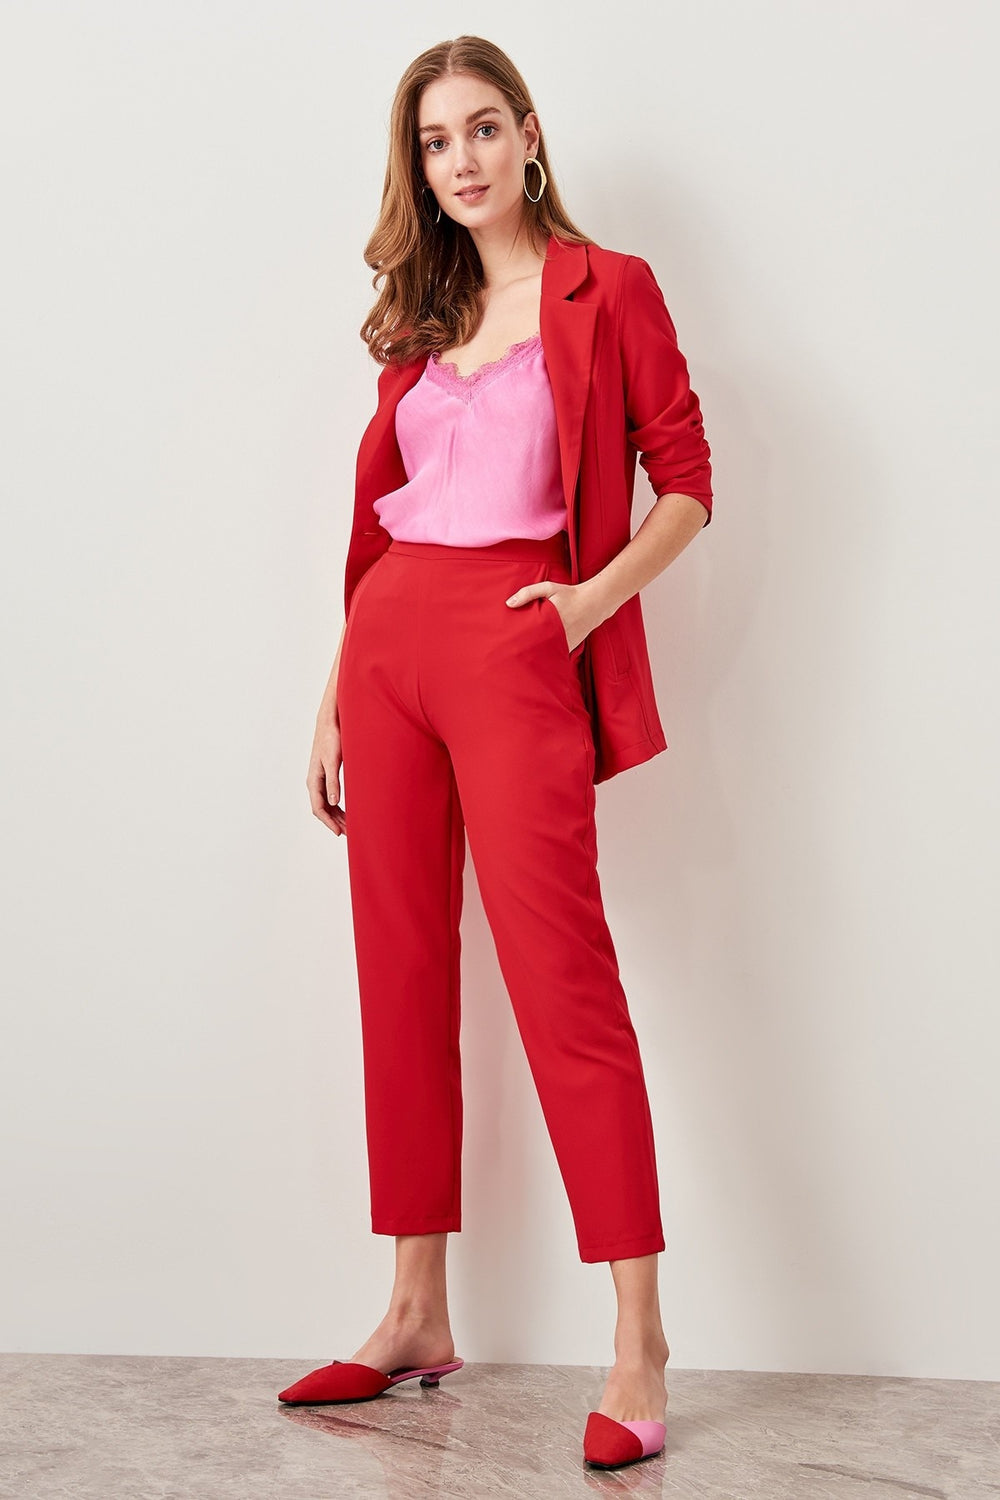 Red Carrots Cut Trousers Pants - Top Maxy